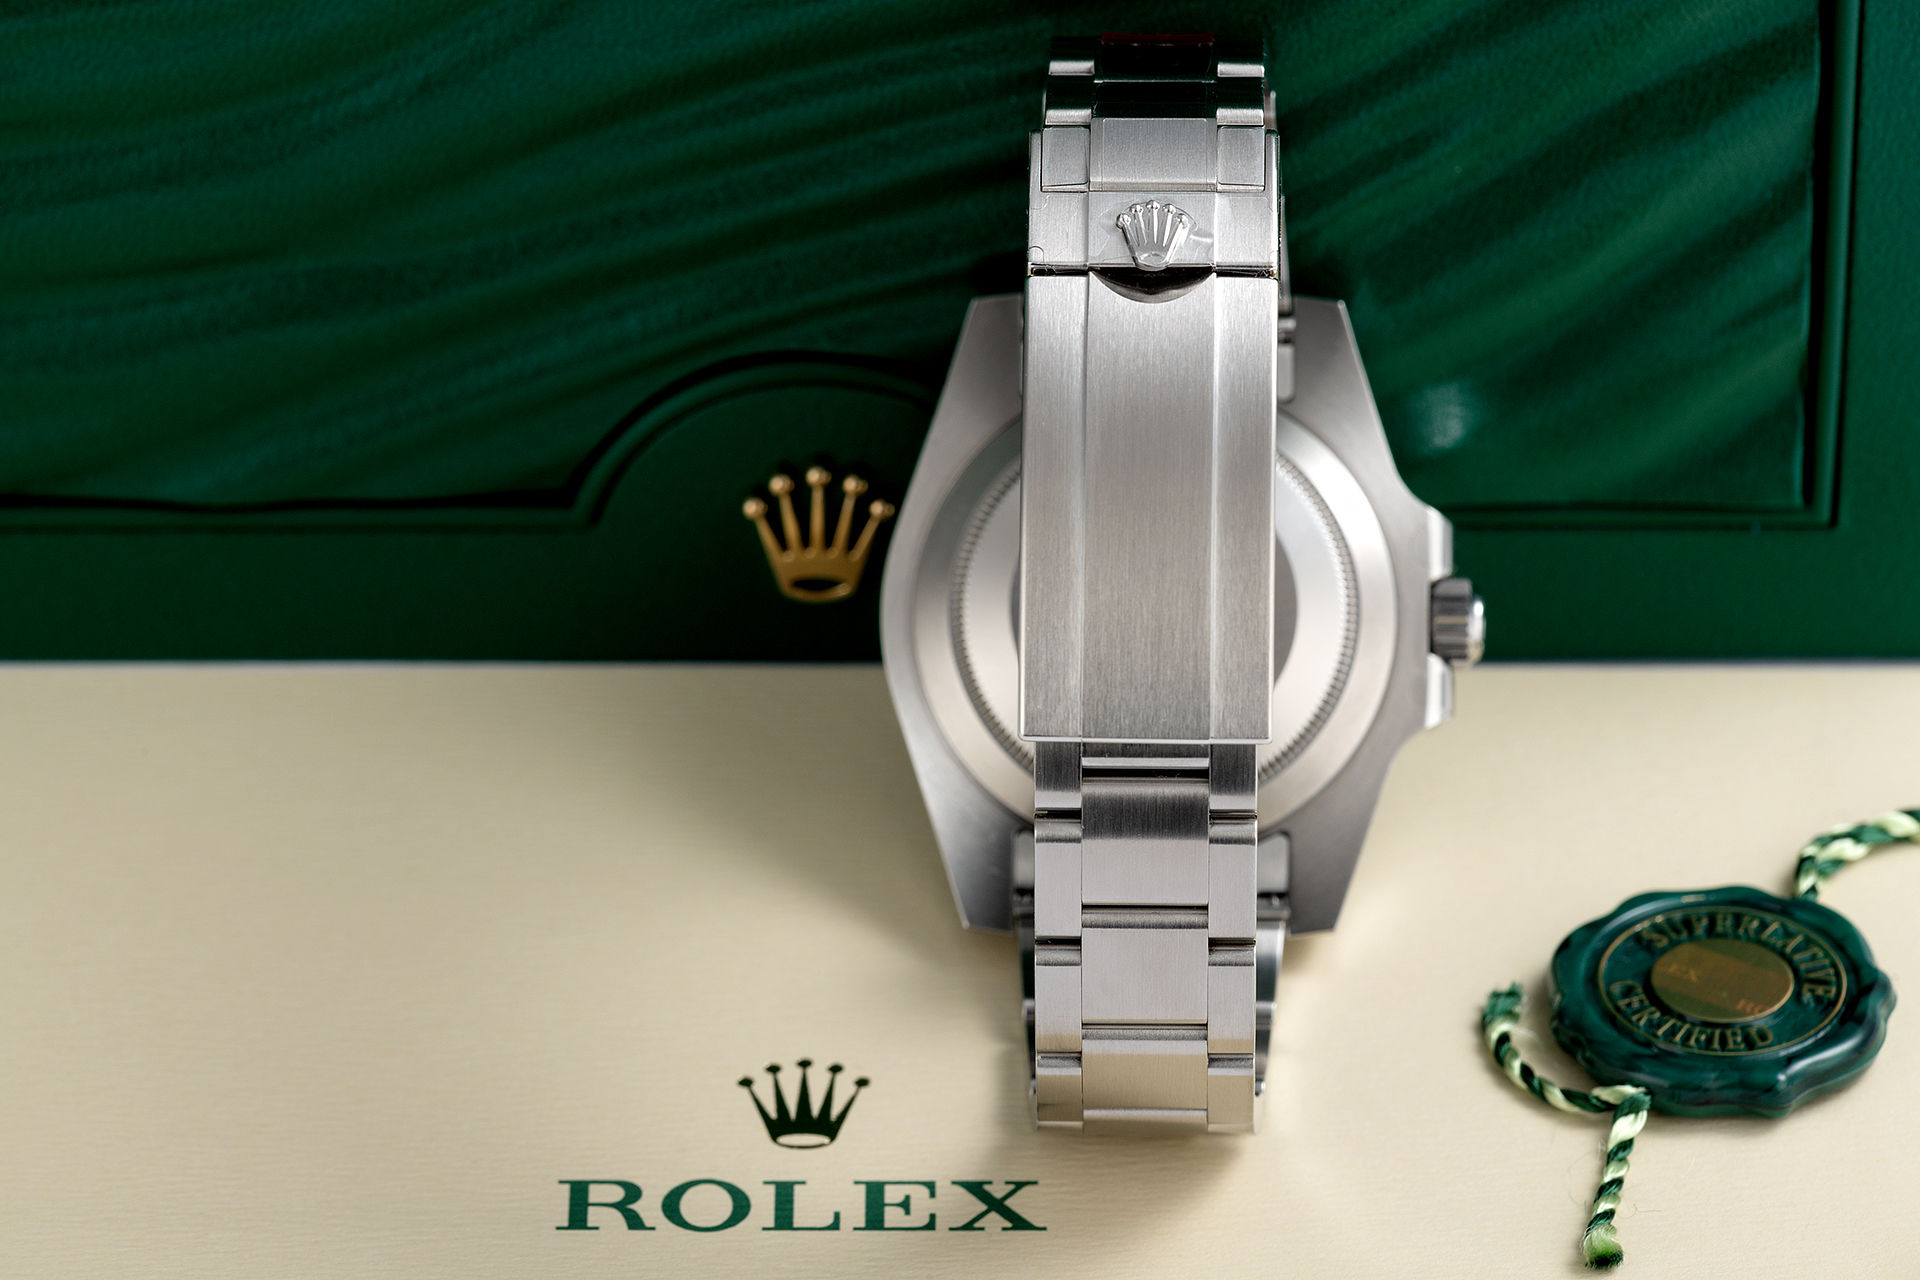 ref 116610LN | '5 Year Rolex Warranty' | Rolex Submariner Date